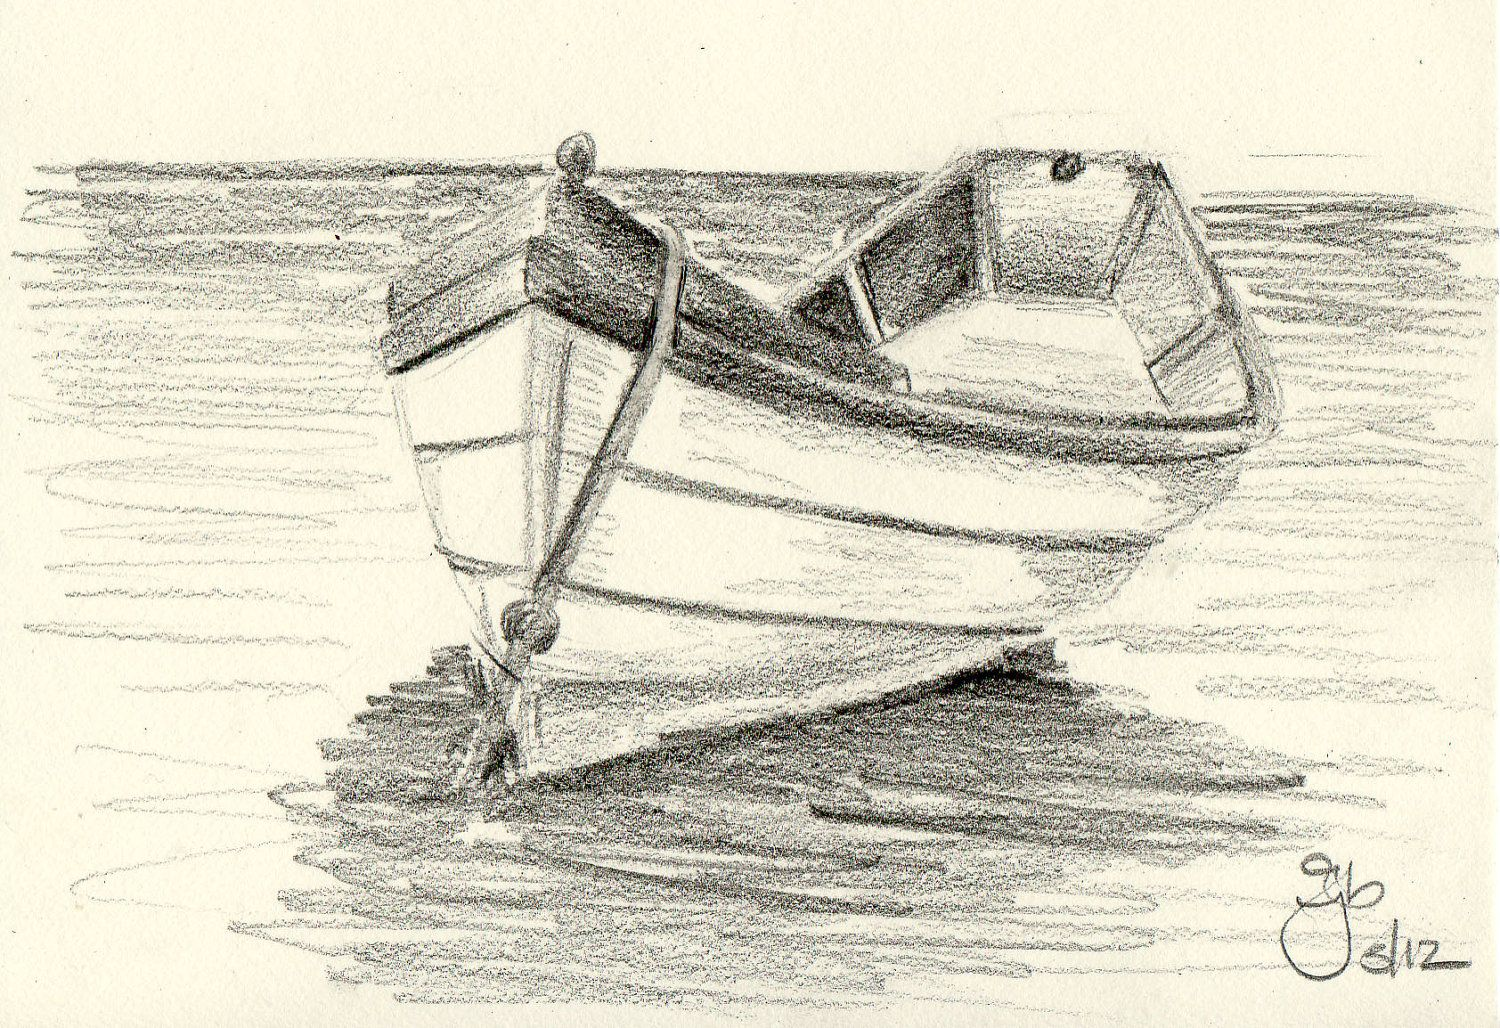 Boat on Water - 4x6 - Pencil Study | Study, Boats and ...